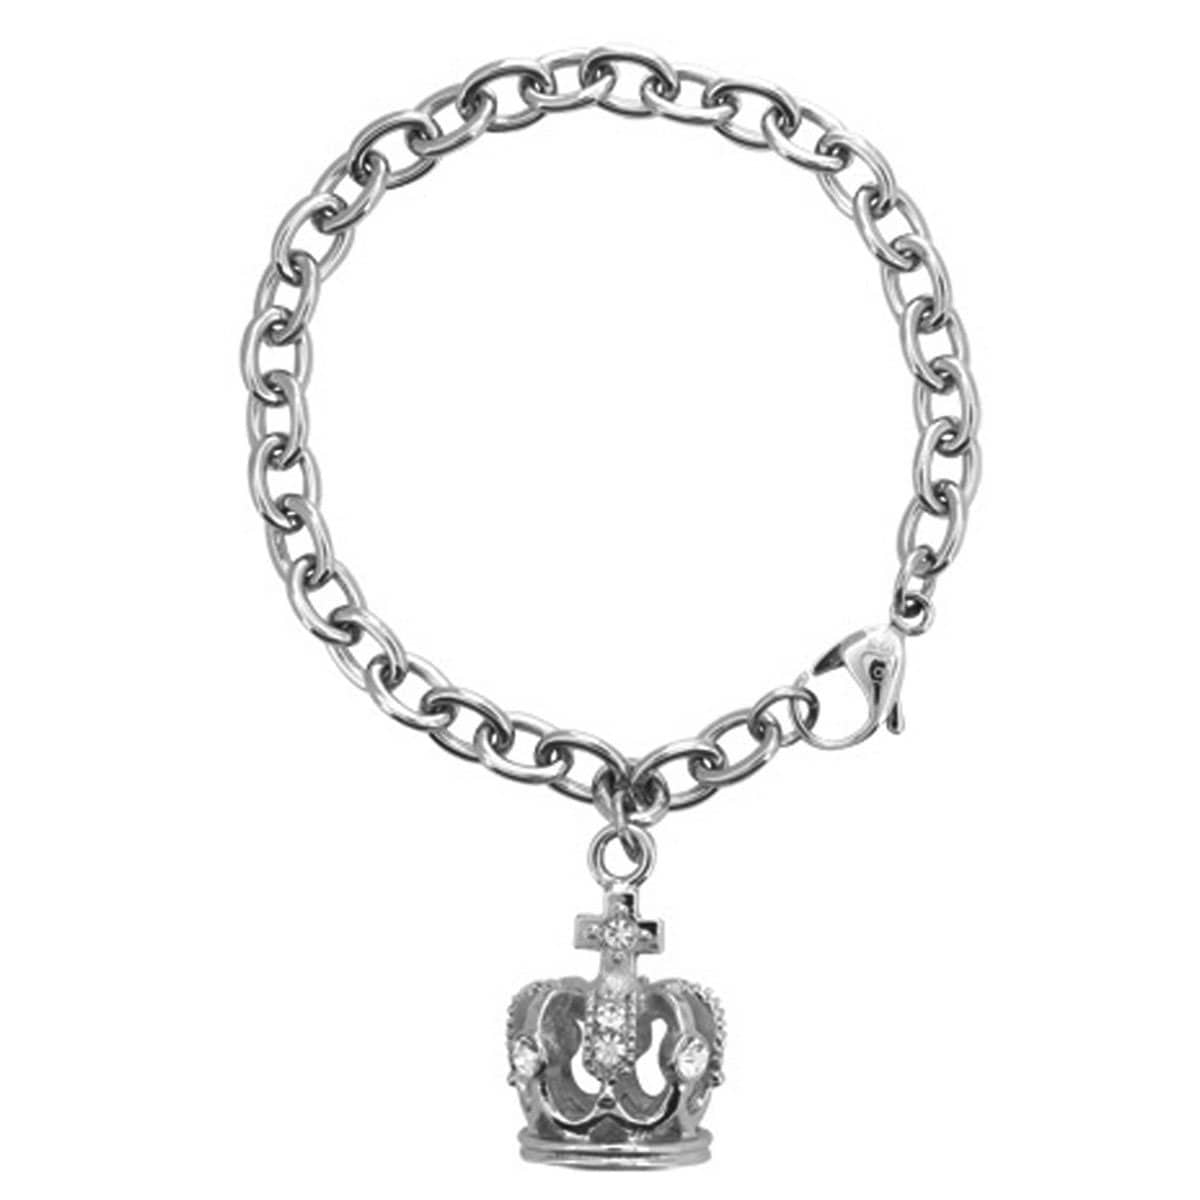 Silver Stainless Steel with Studded Crystal Crown Charm Bracelet